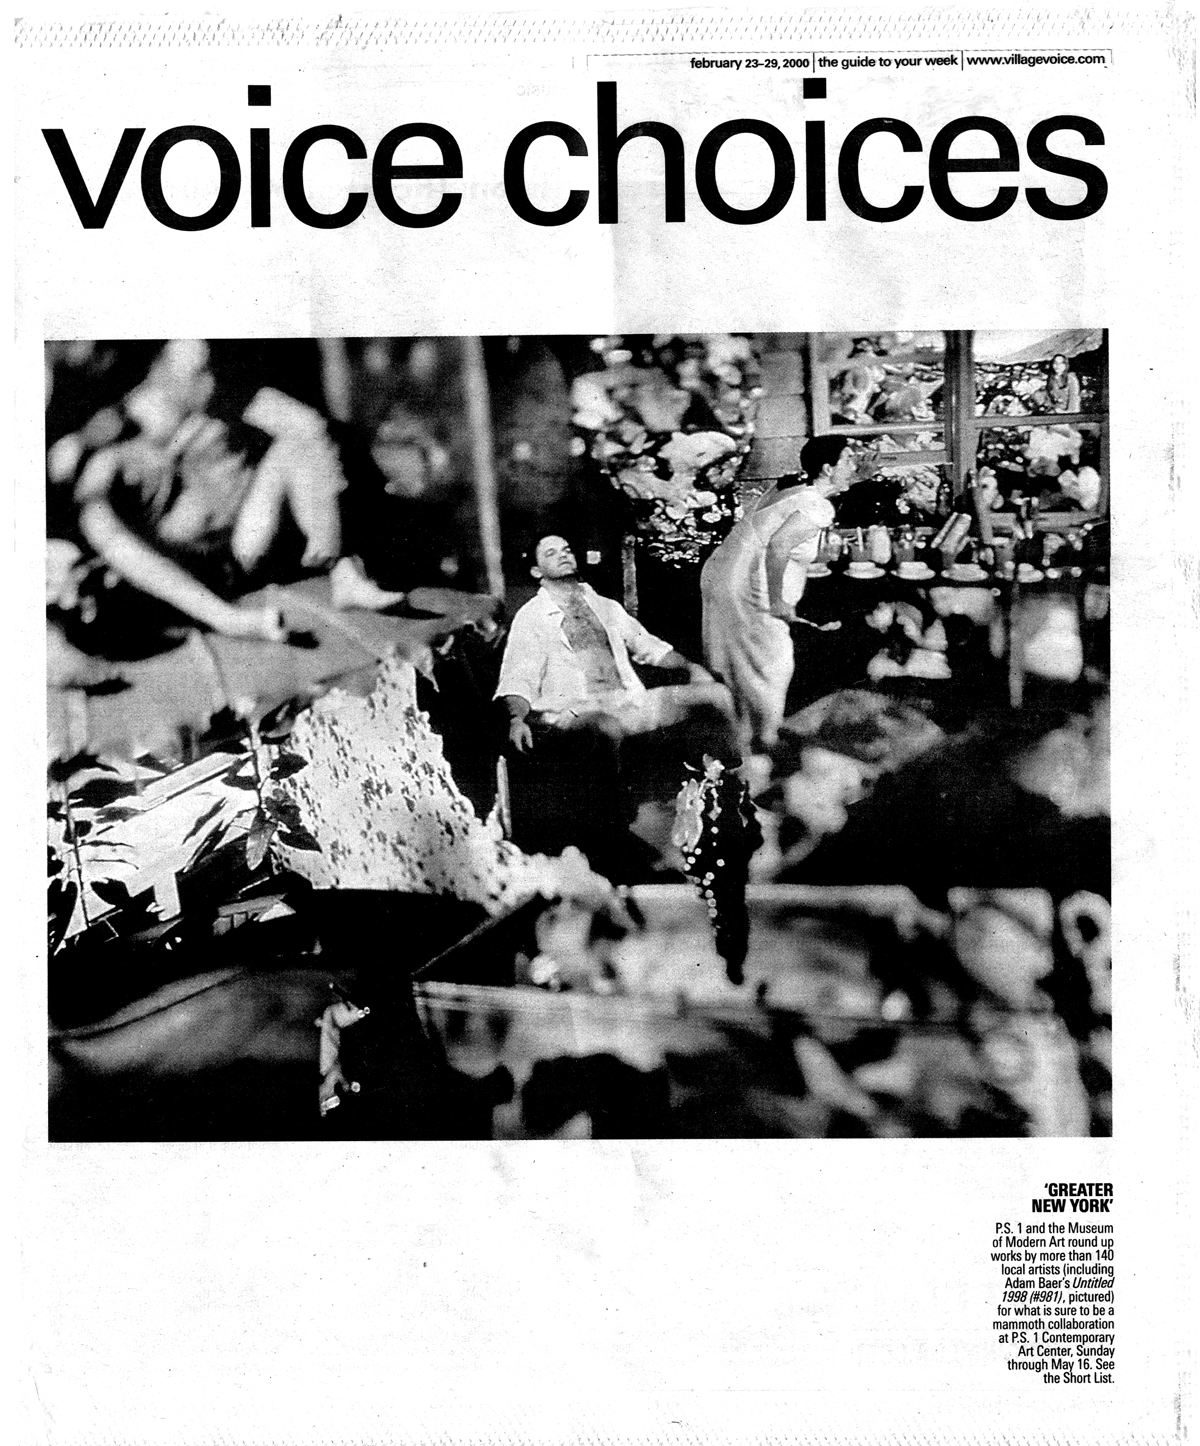 The Village Voice.jpg